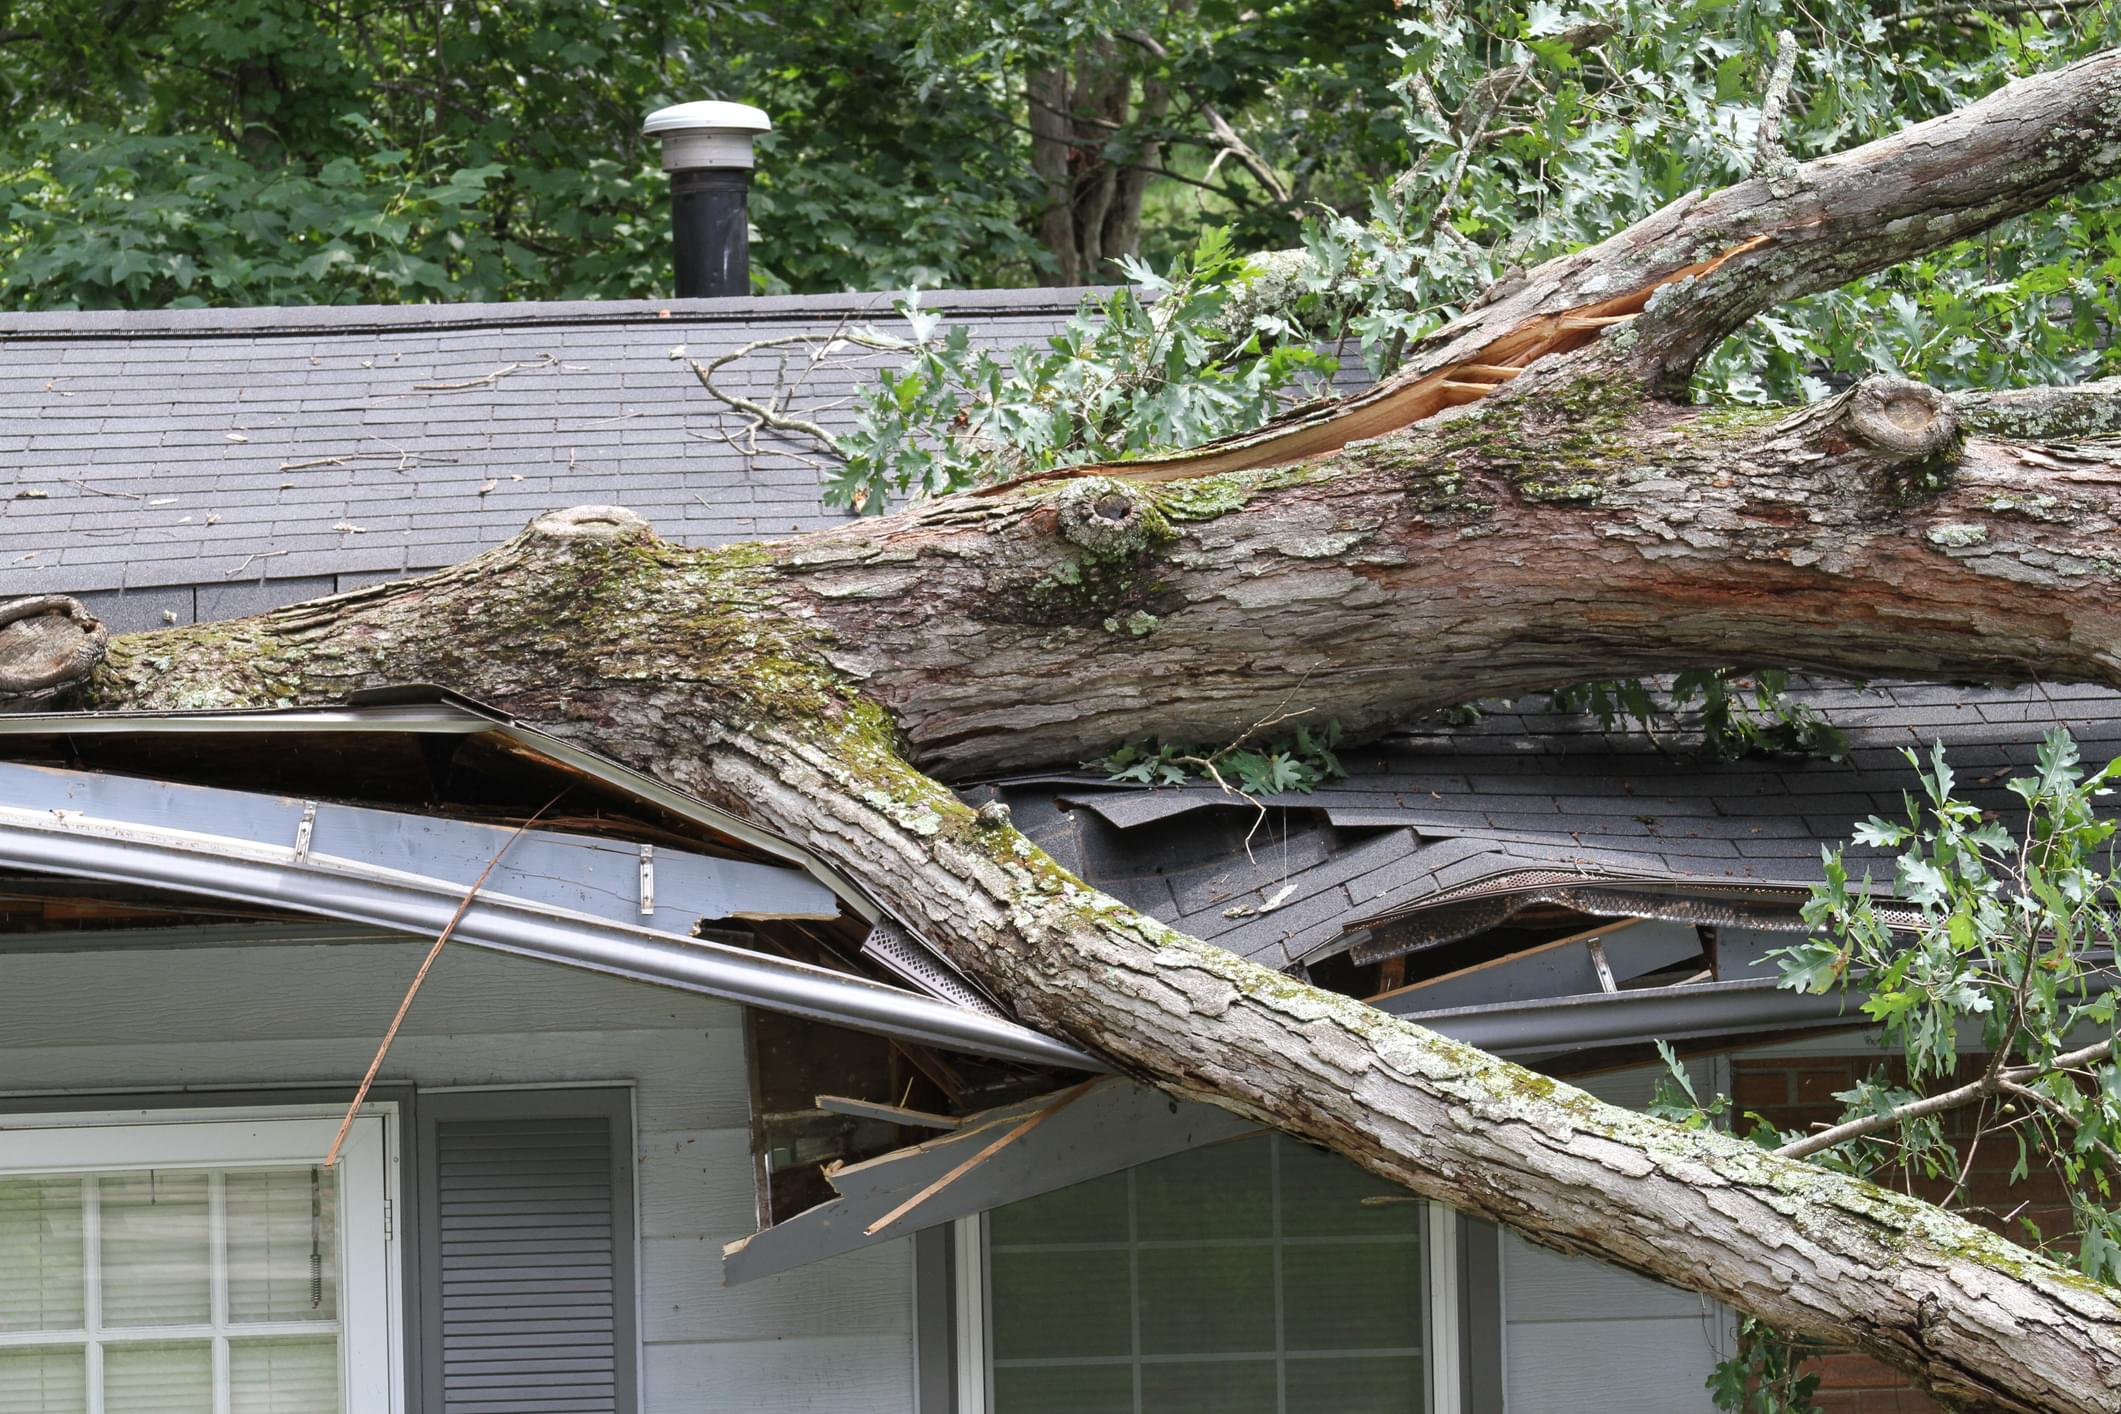 PODCAST – Friday, August 7: Fun Fact Friday, Tropical Storm Isaias Damage, And The 5 Worst Things About Losing Power